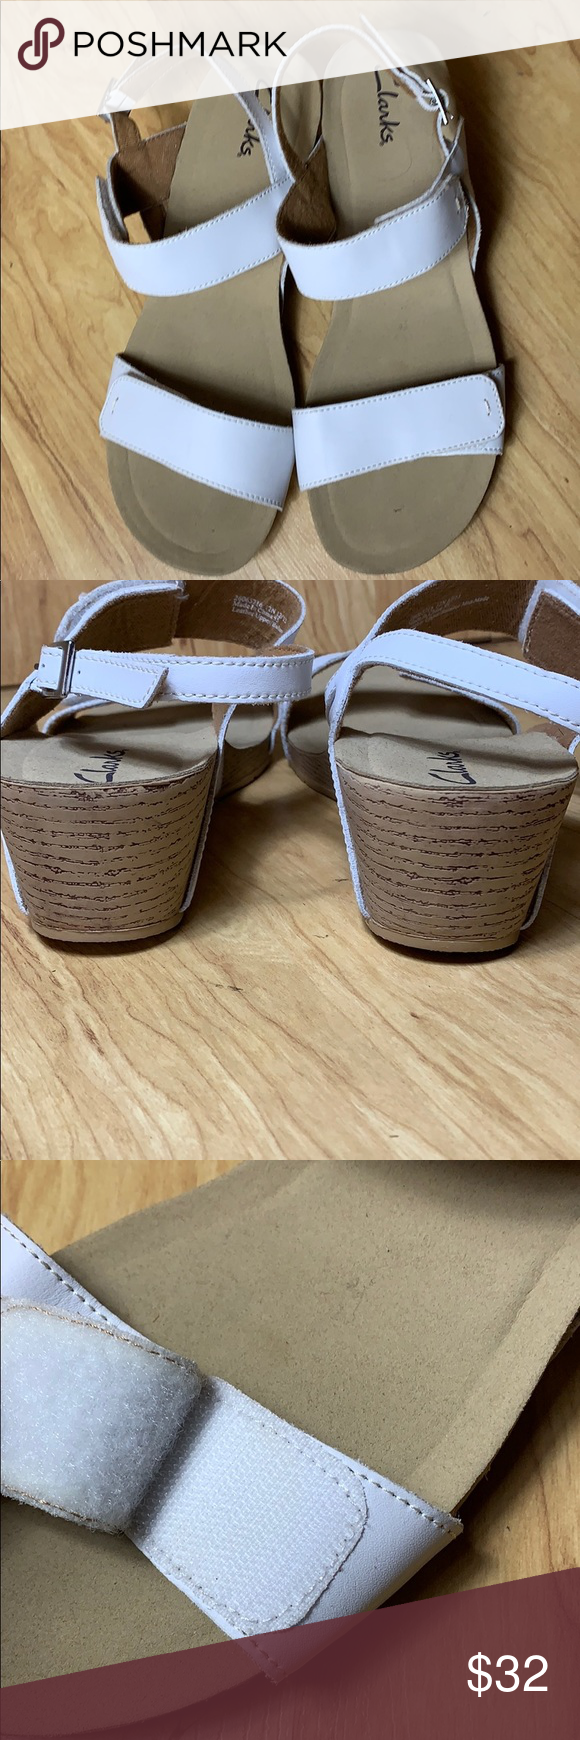 Clarks White Leather Sandals Size 12n Excellent Condition